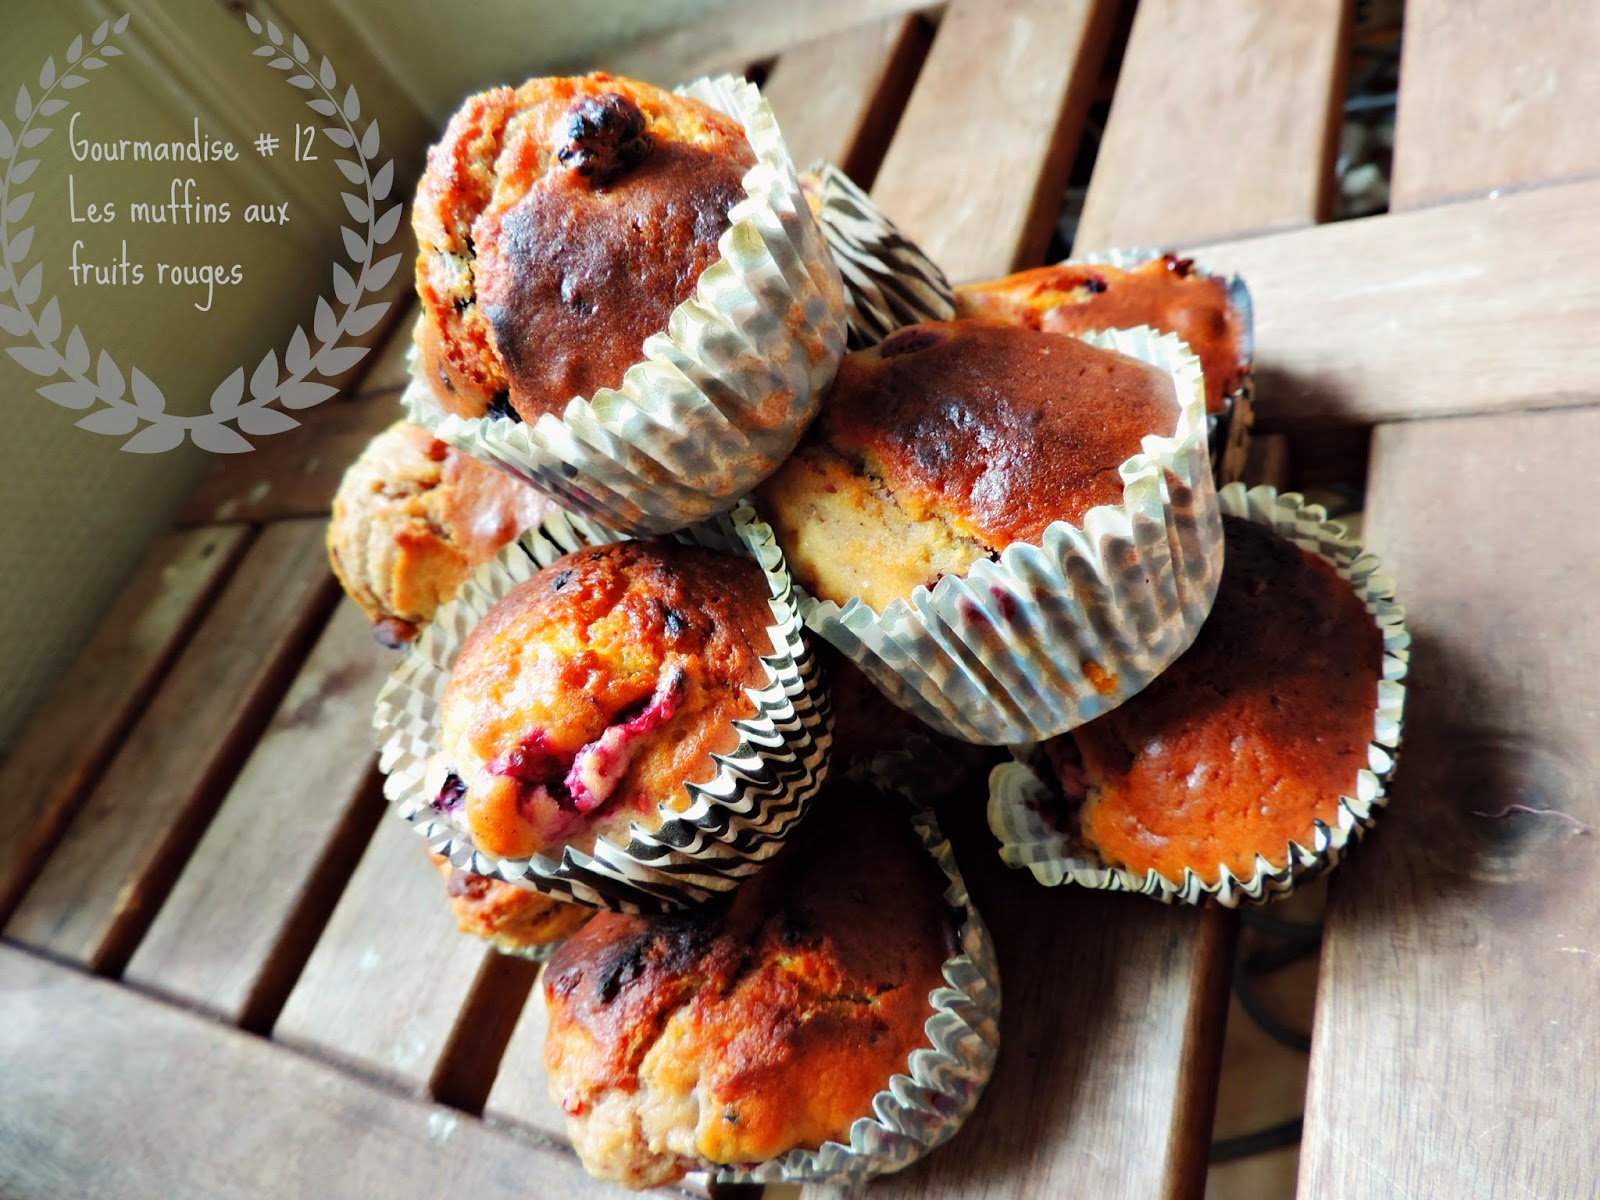 http://mynameisgeorges.blogspot.com/2014/05/gourmandise-12-les-muffins-aux-fruits.html